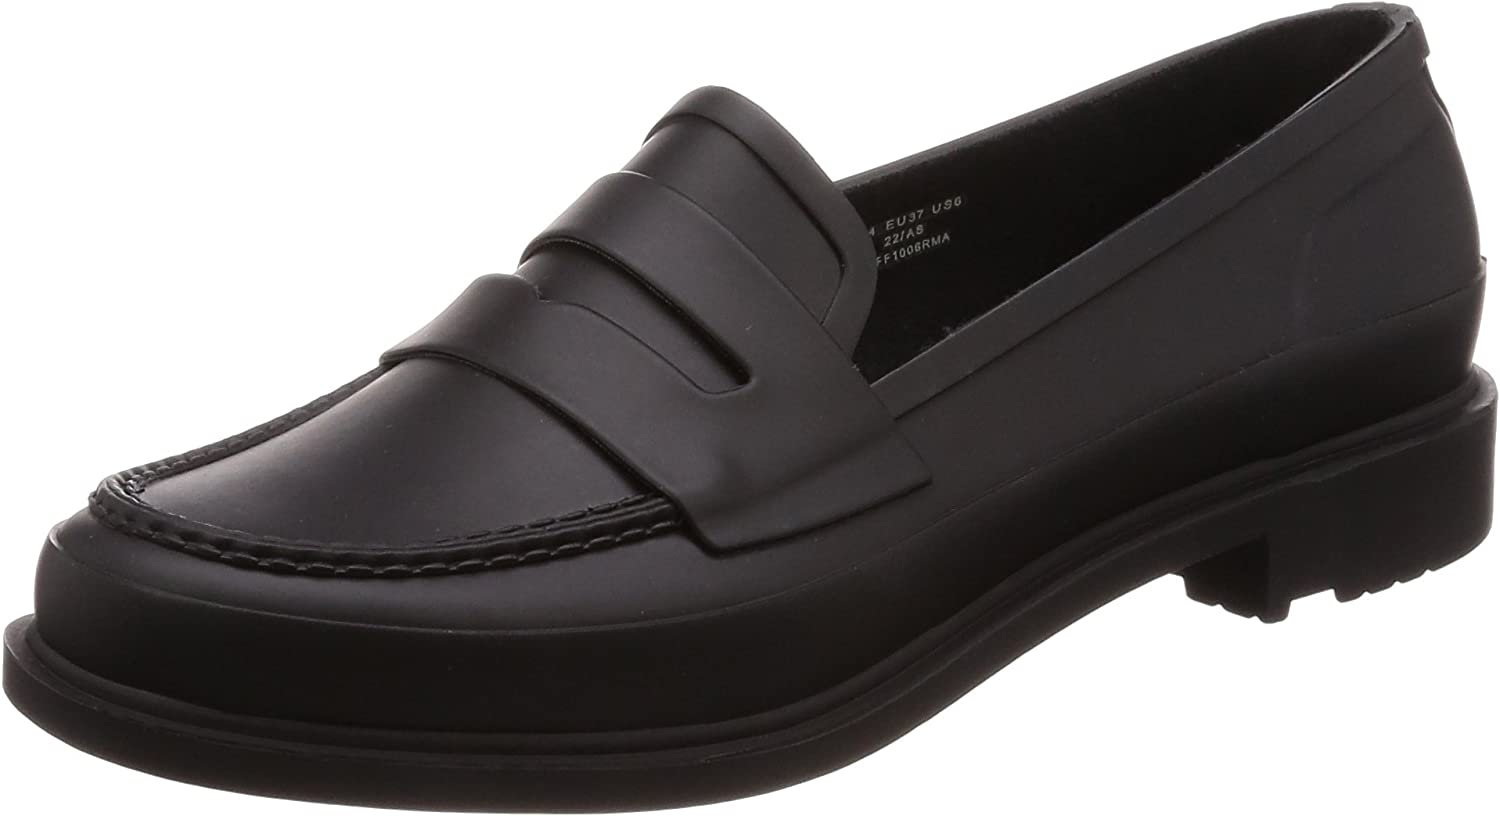 Hunter Womens Refined Penny Loafer Matte